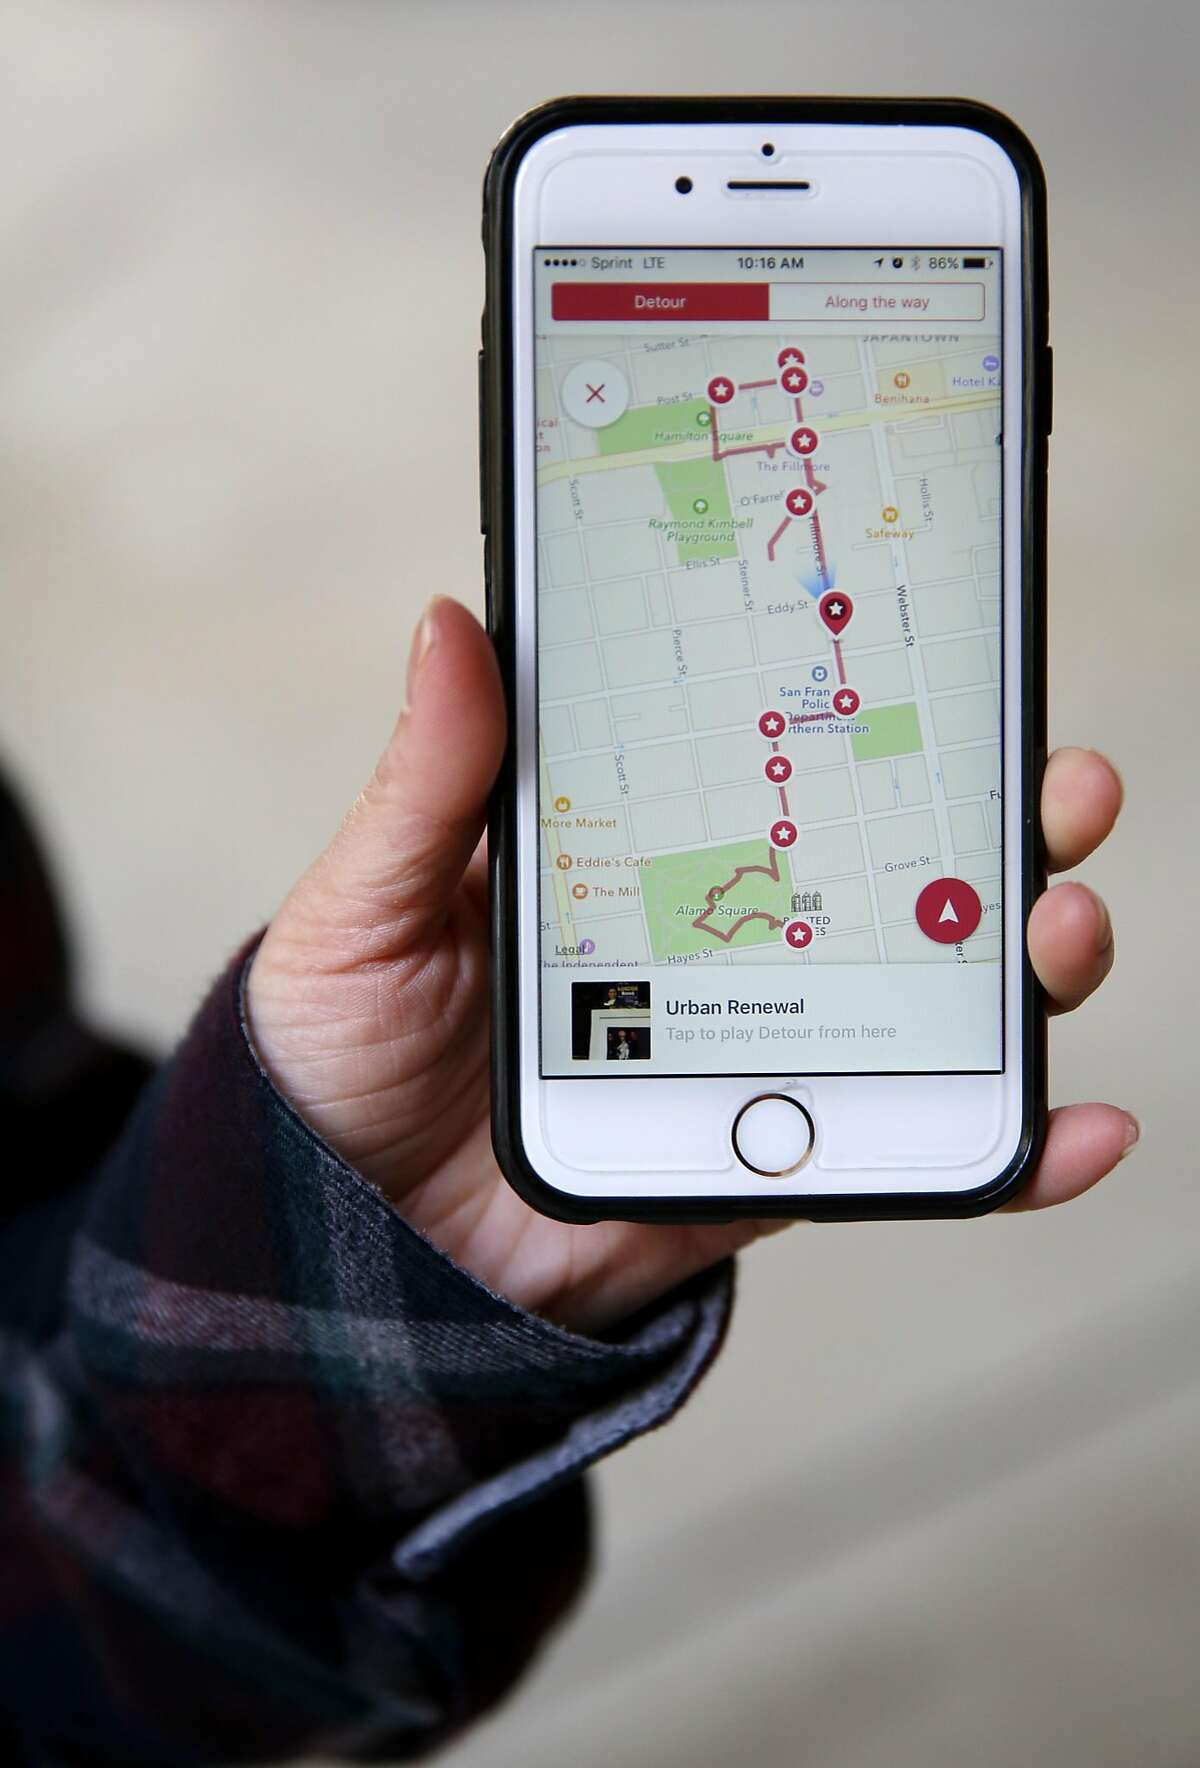 Diana Hoang shows the Detour application while on a tour of the Western Addition neighborhood in San Francisco, California, on Wednesday, March 31, 2016.